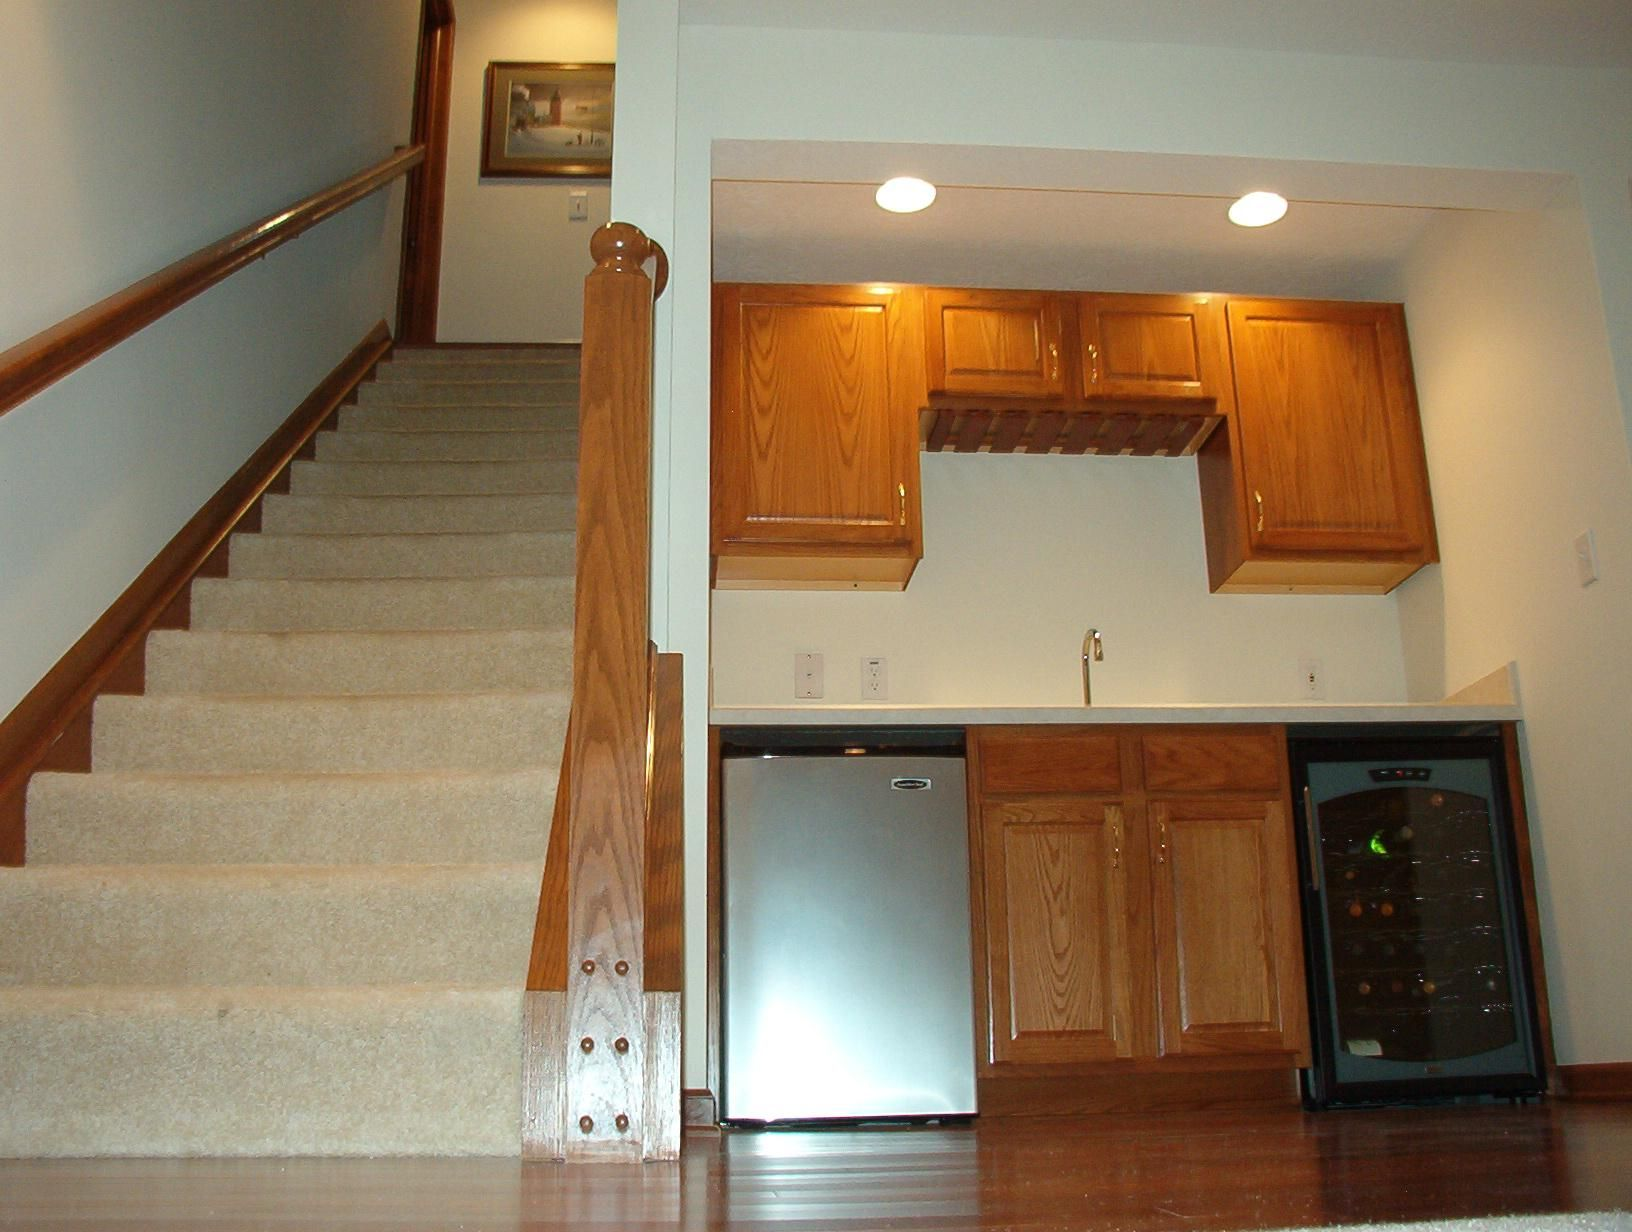 Basement Bar Remodeling Ideas Open Carpeted Stairwell With Banisterbar Area With Countertop